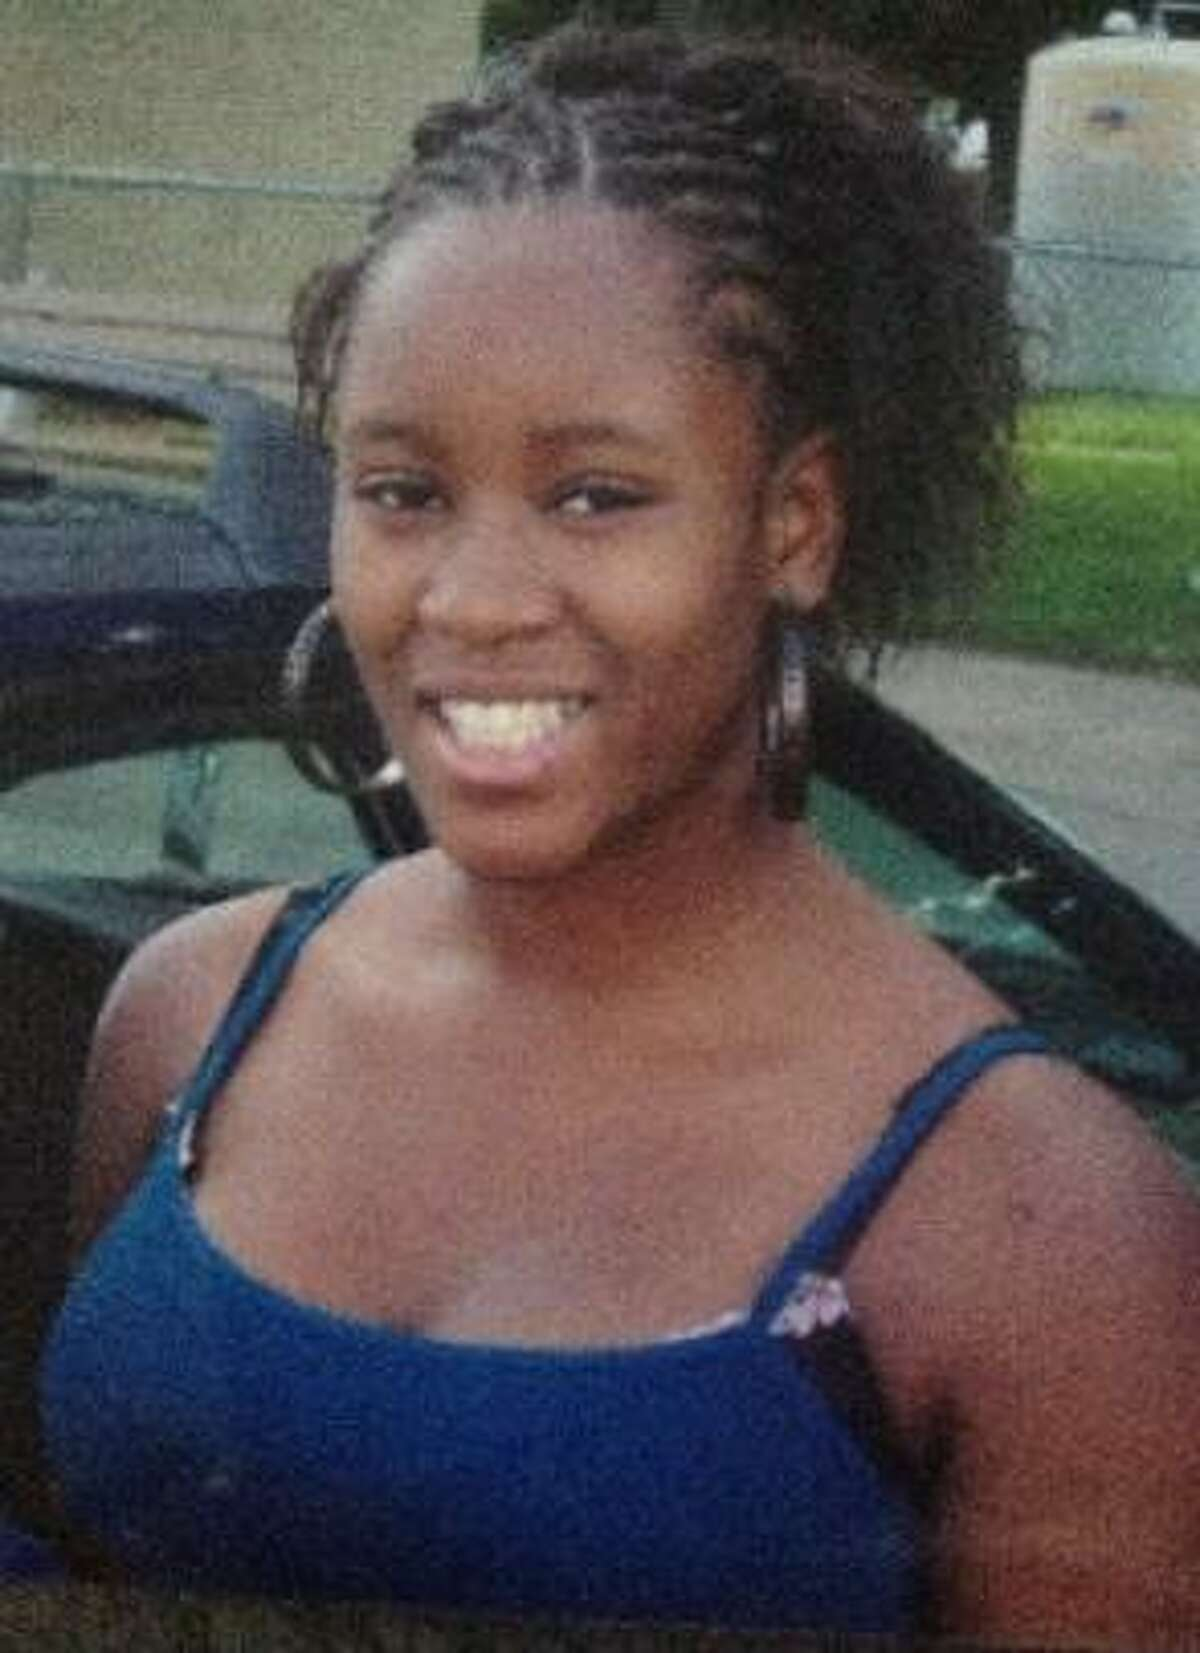 Adrianna Lee, 16, of New Haven